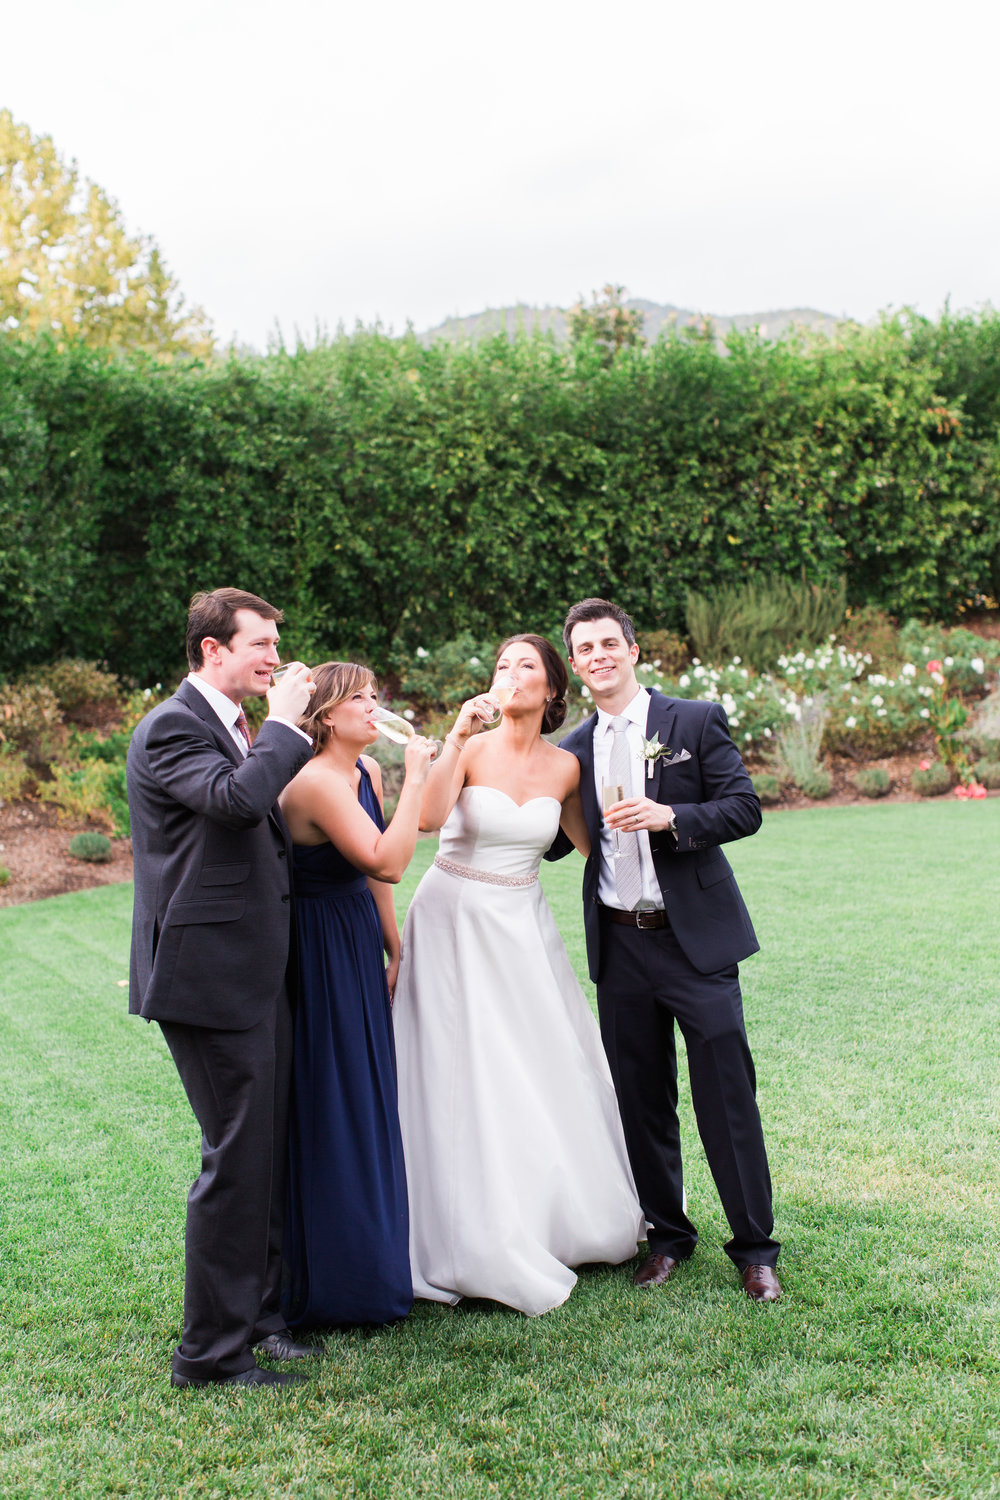 intimate-wedding-at-solage-calistoga-in-napa-81.jpg